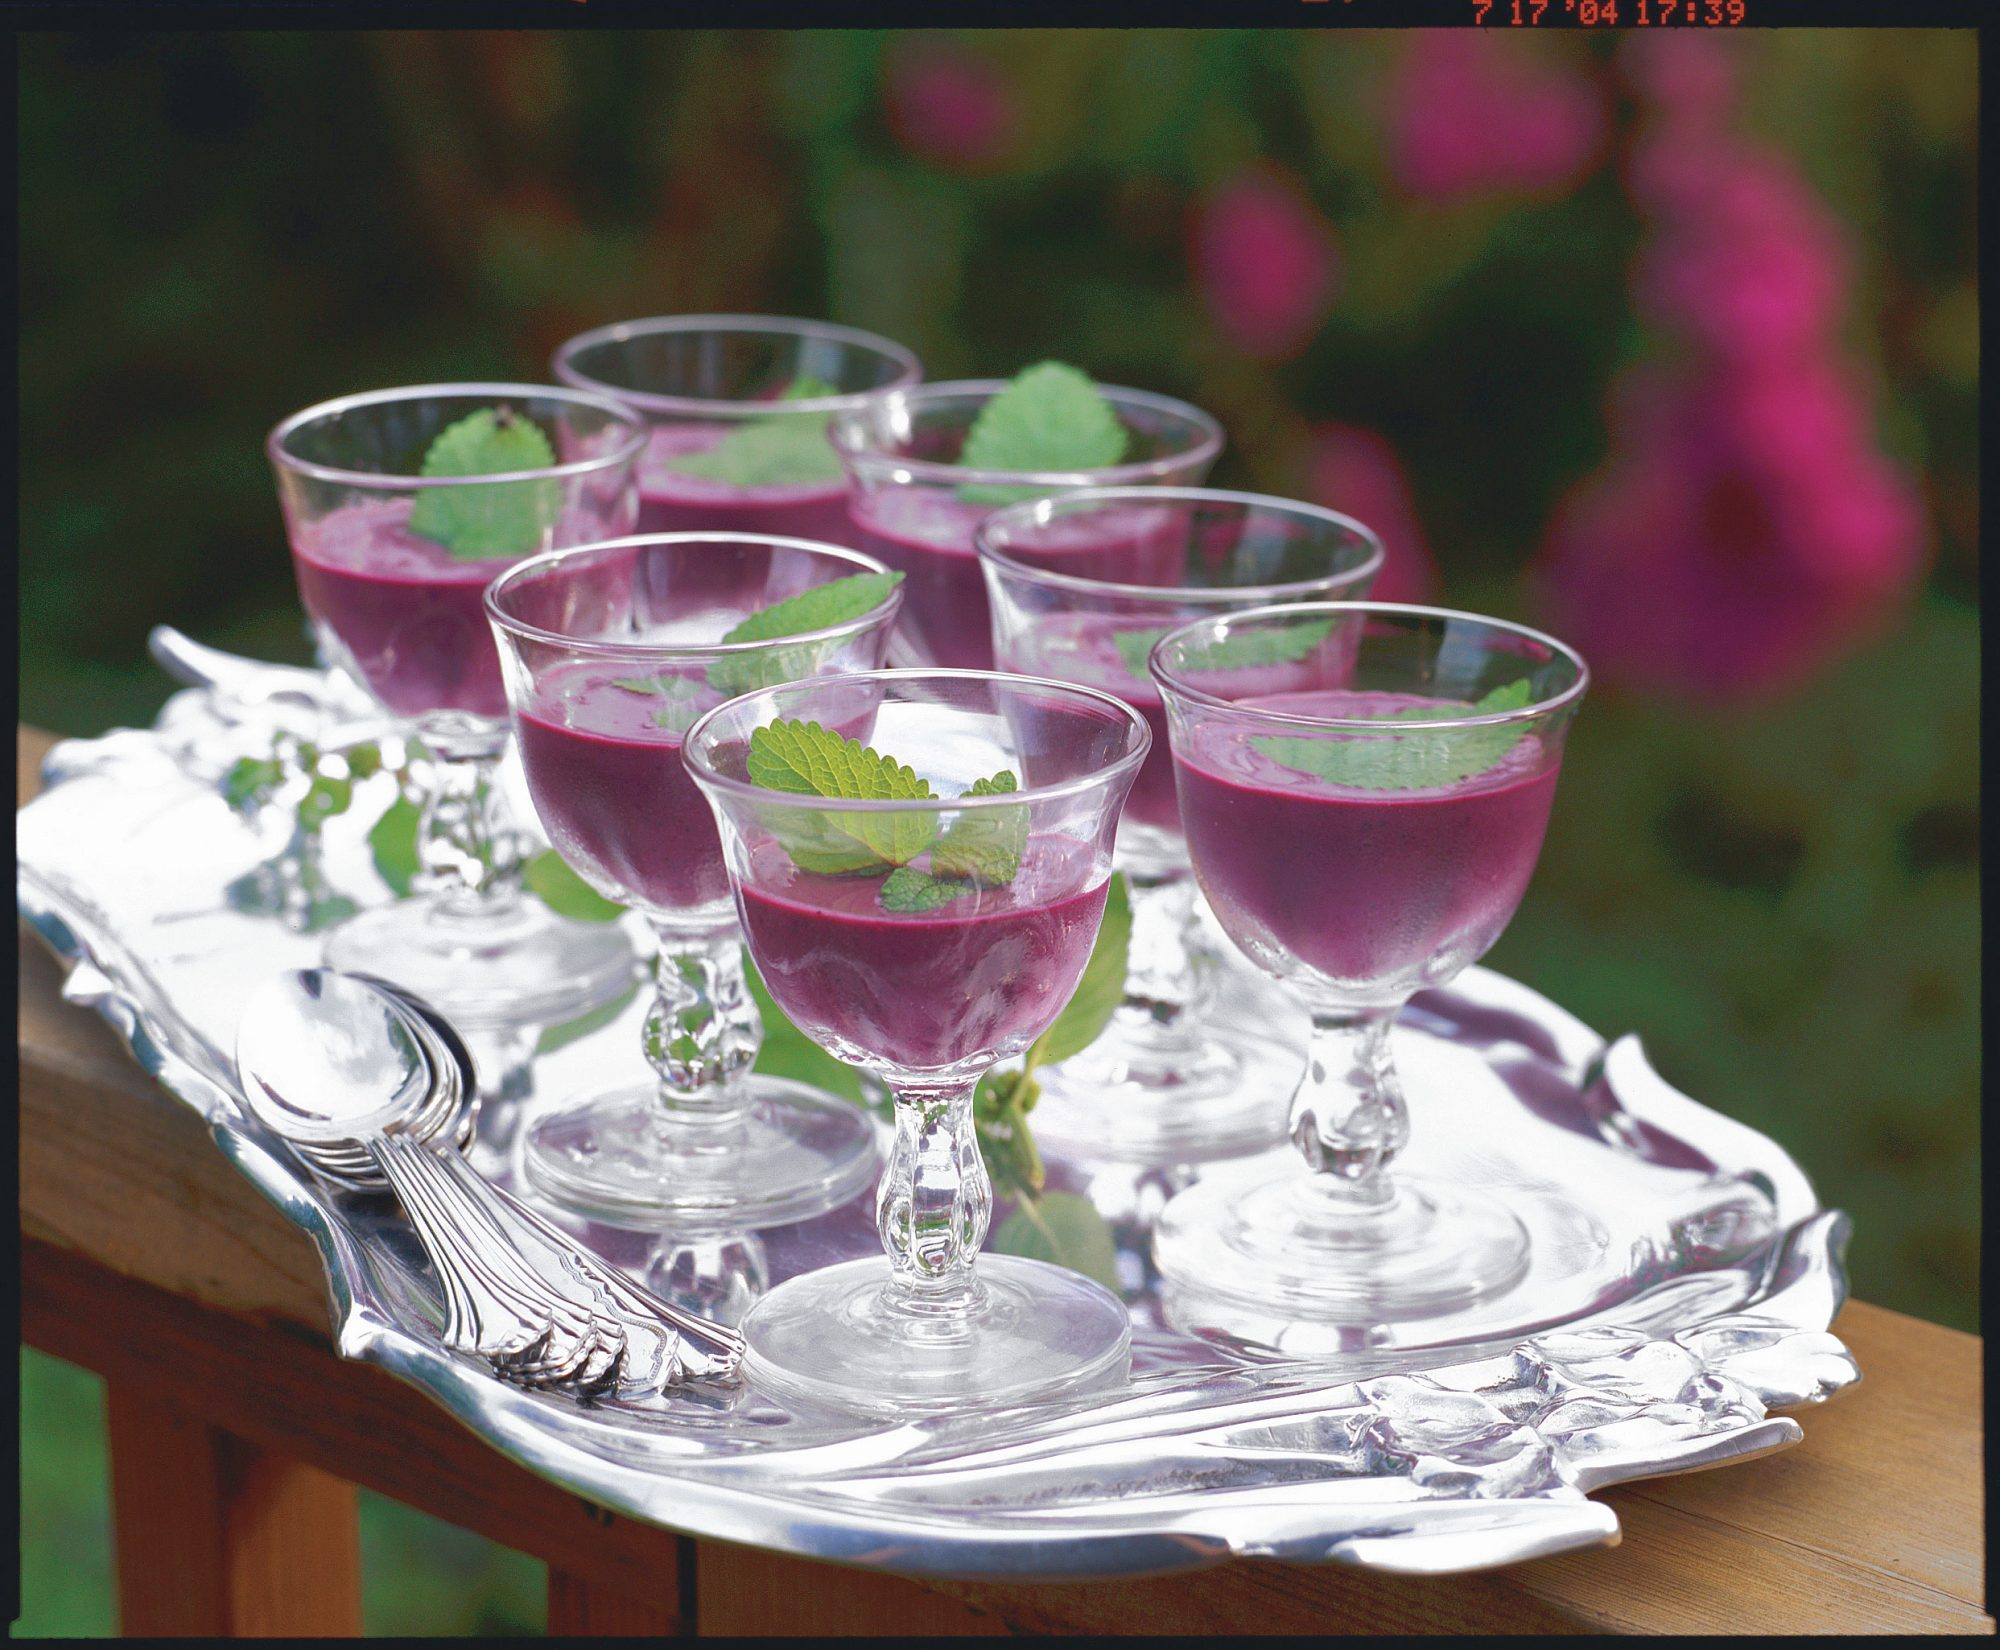 Fresh Blueberry Recipes: Chilled Blueberry Soup